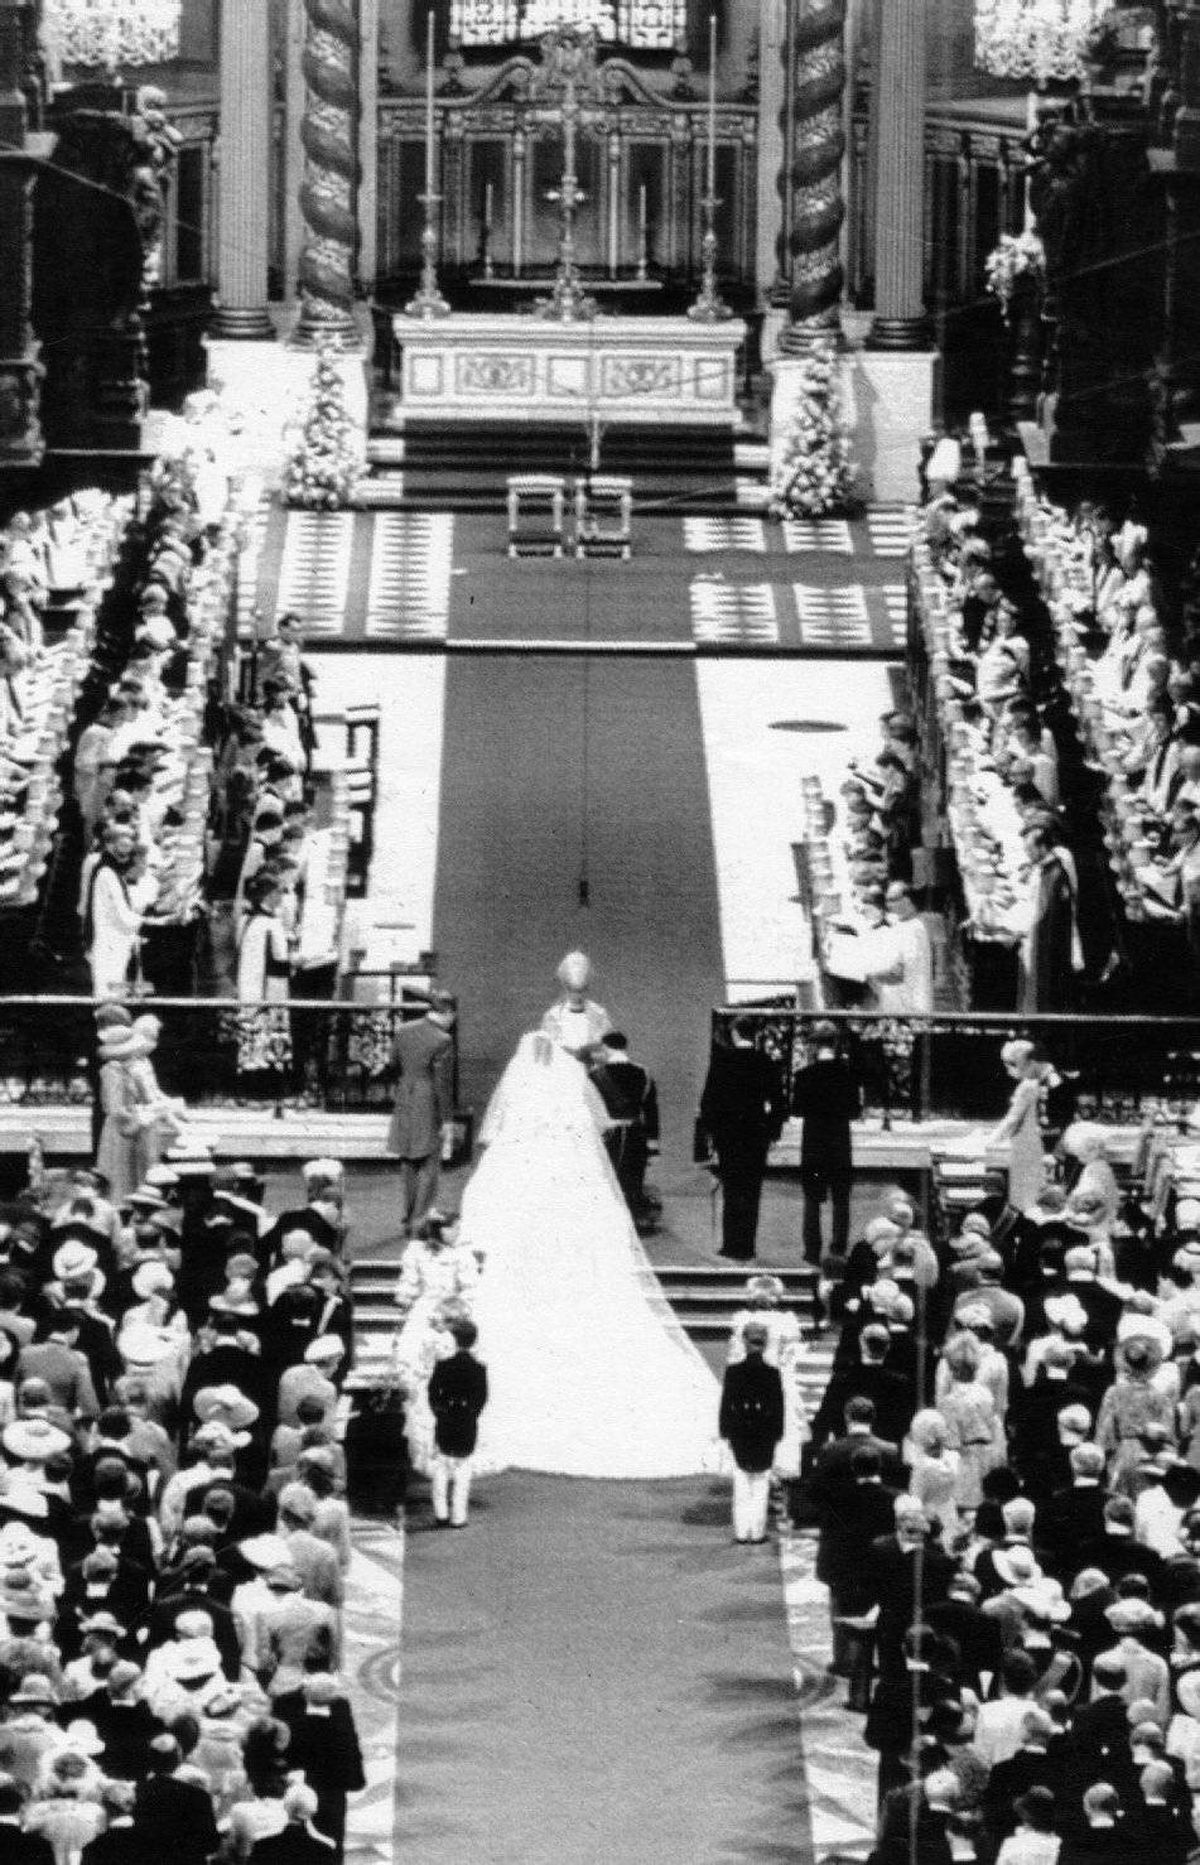 Even with the spectacle and splendour of the young couple's wedding, though, no one could forget Diana.